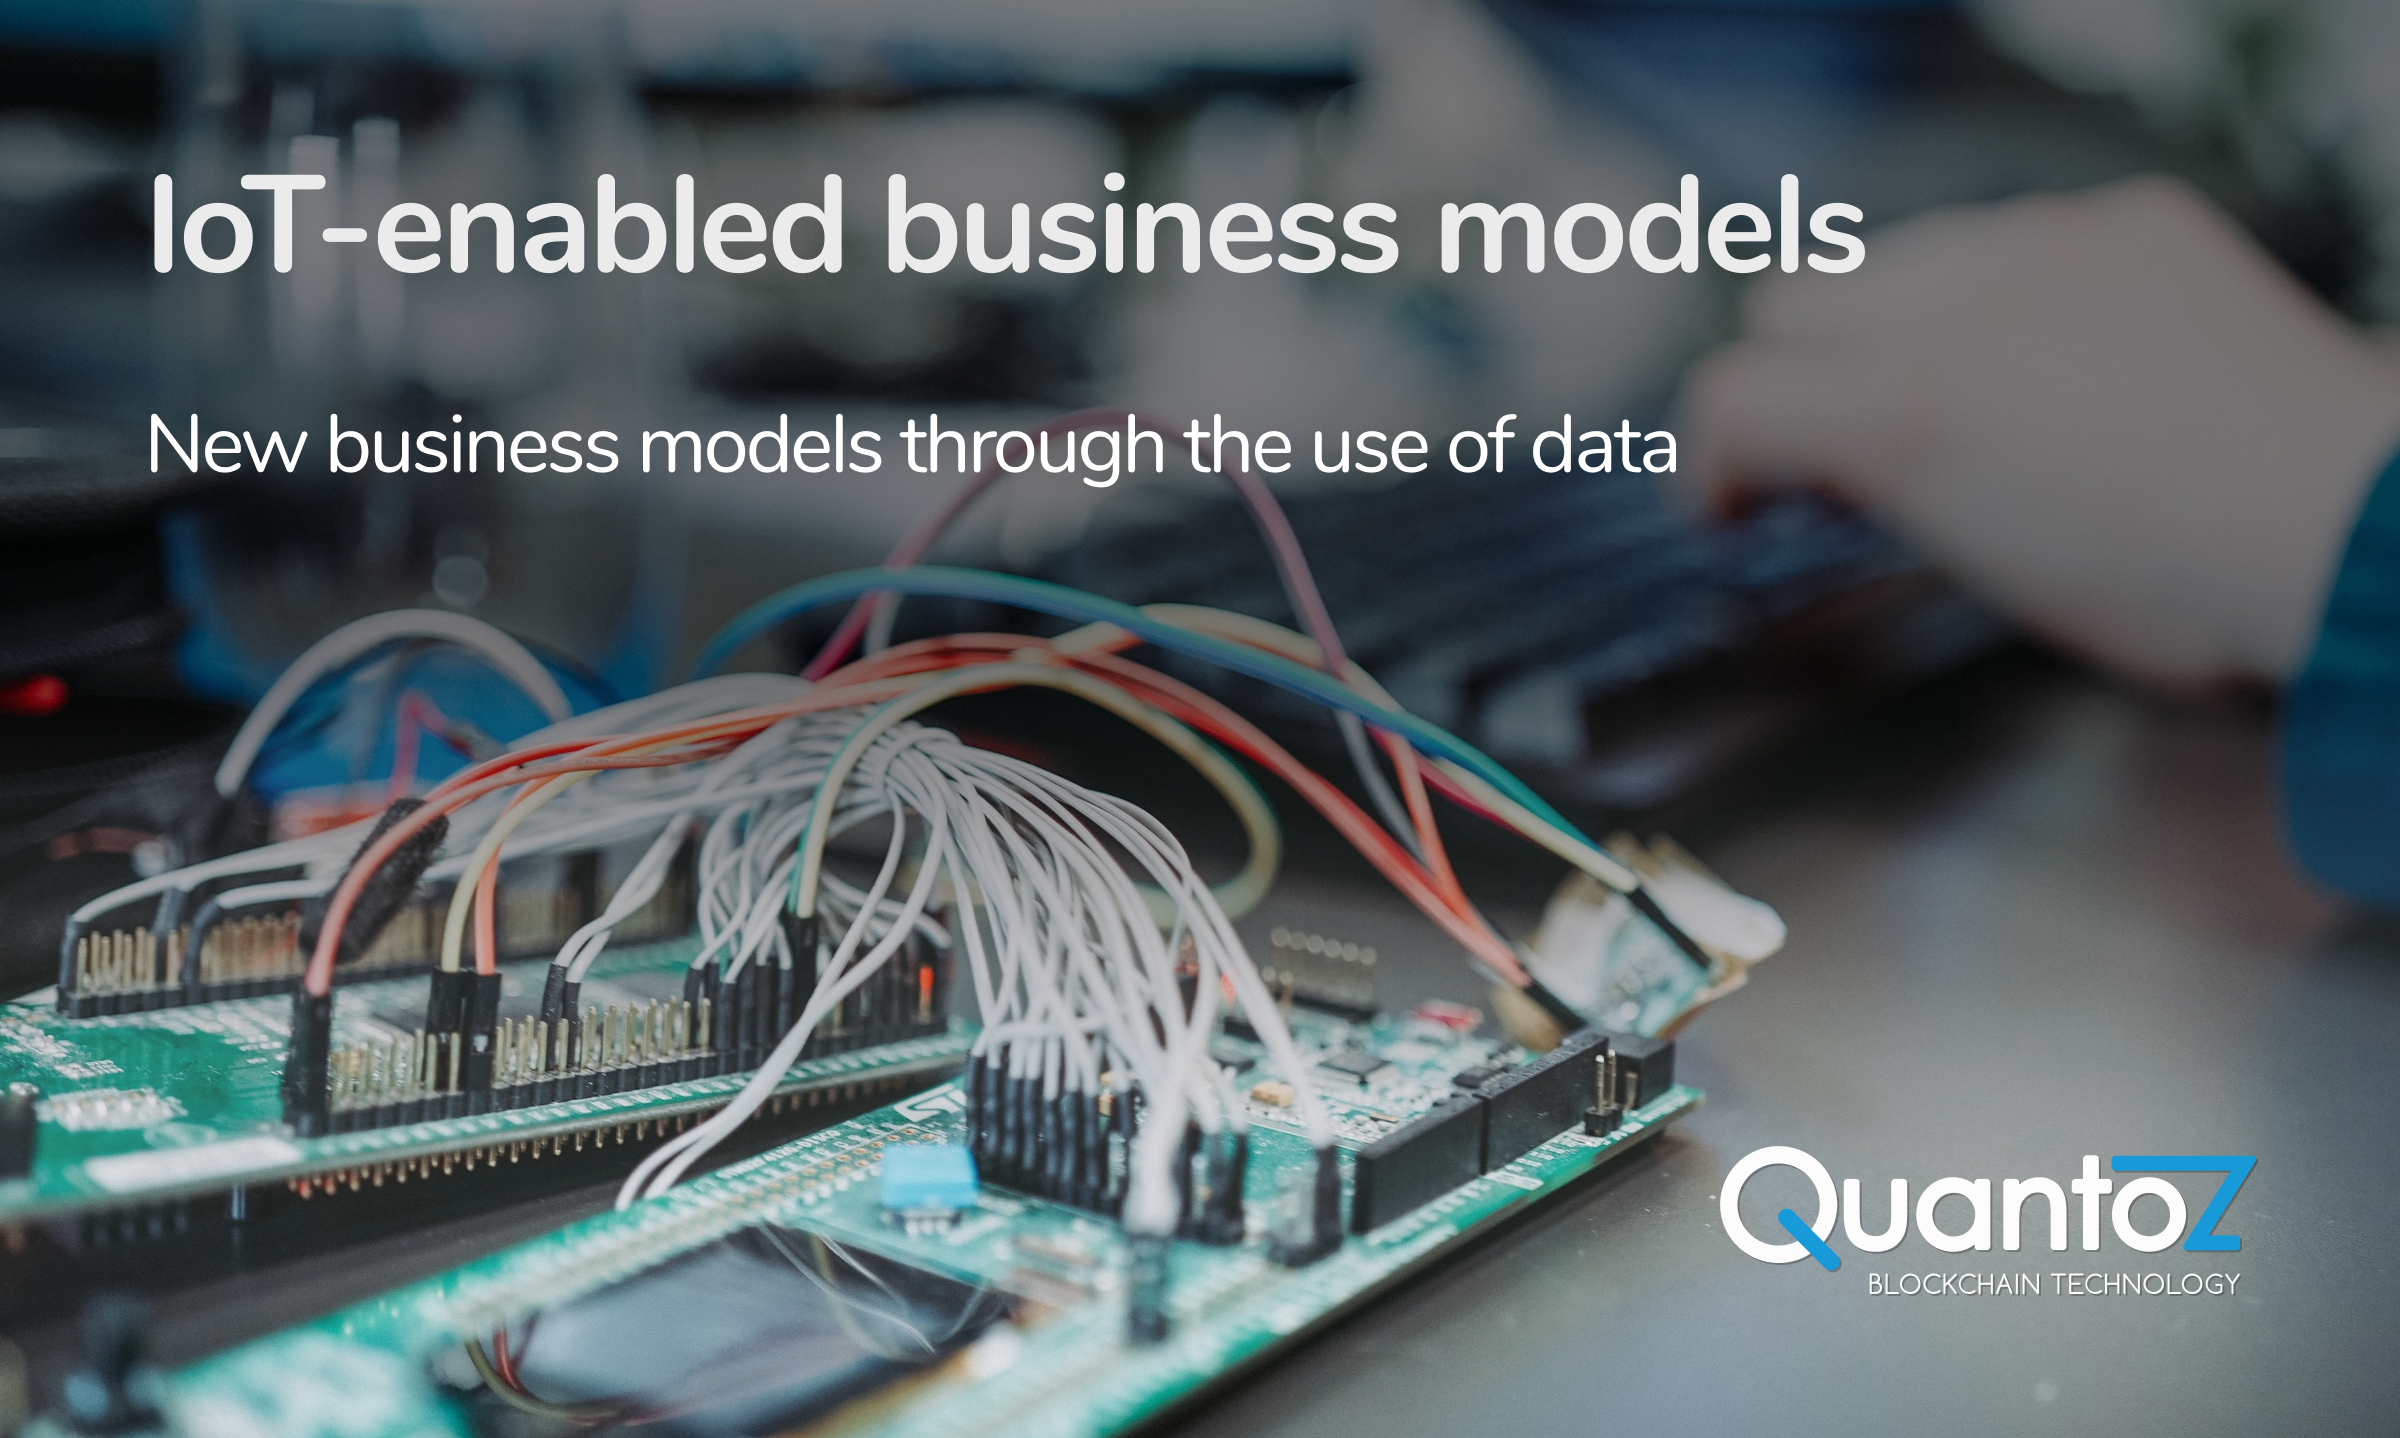 IoT-enabled business models blog post